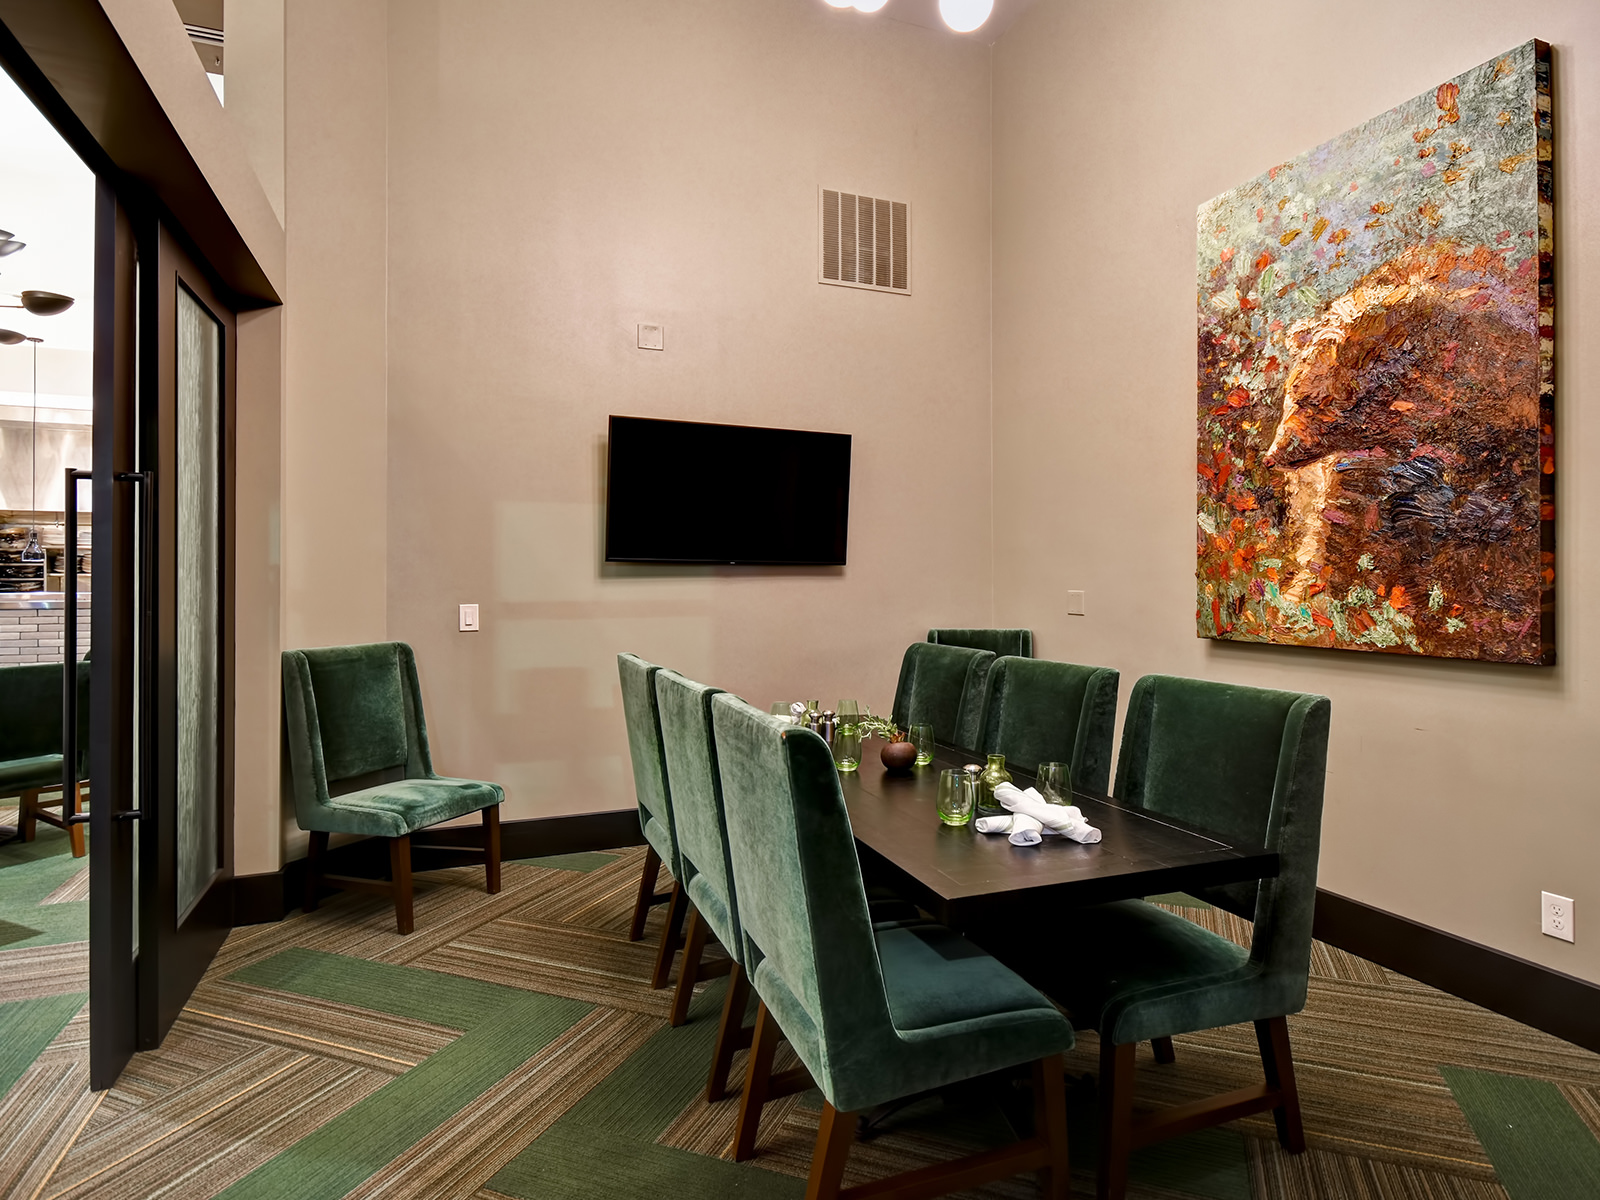 a conference table facing a wall mounted tv